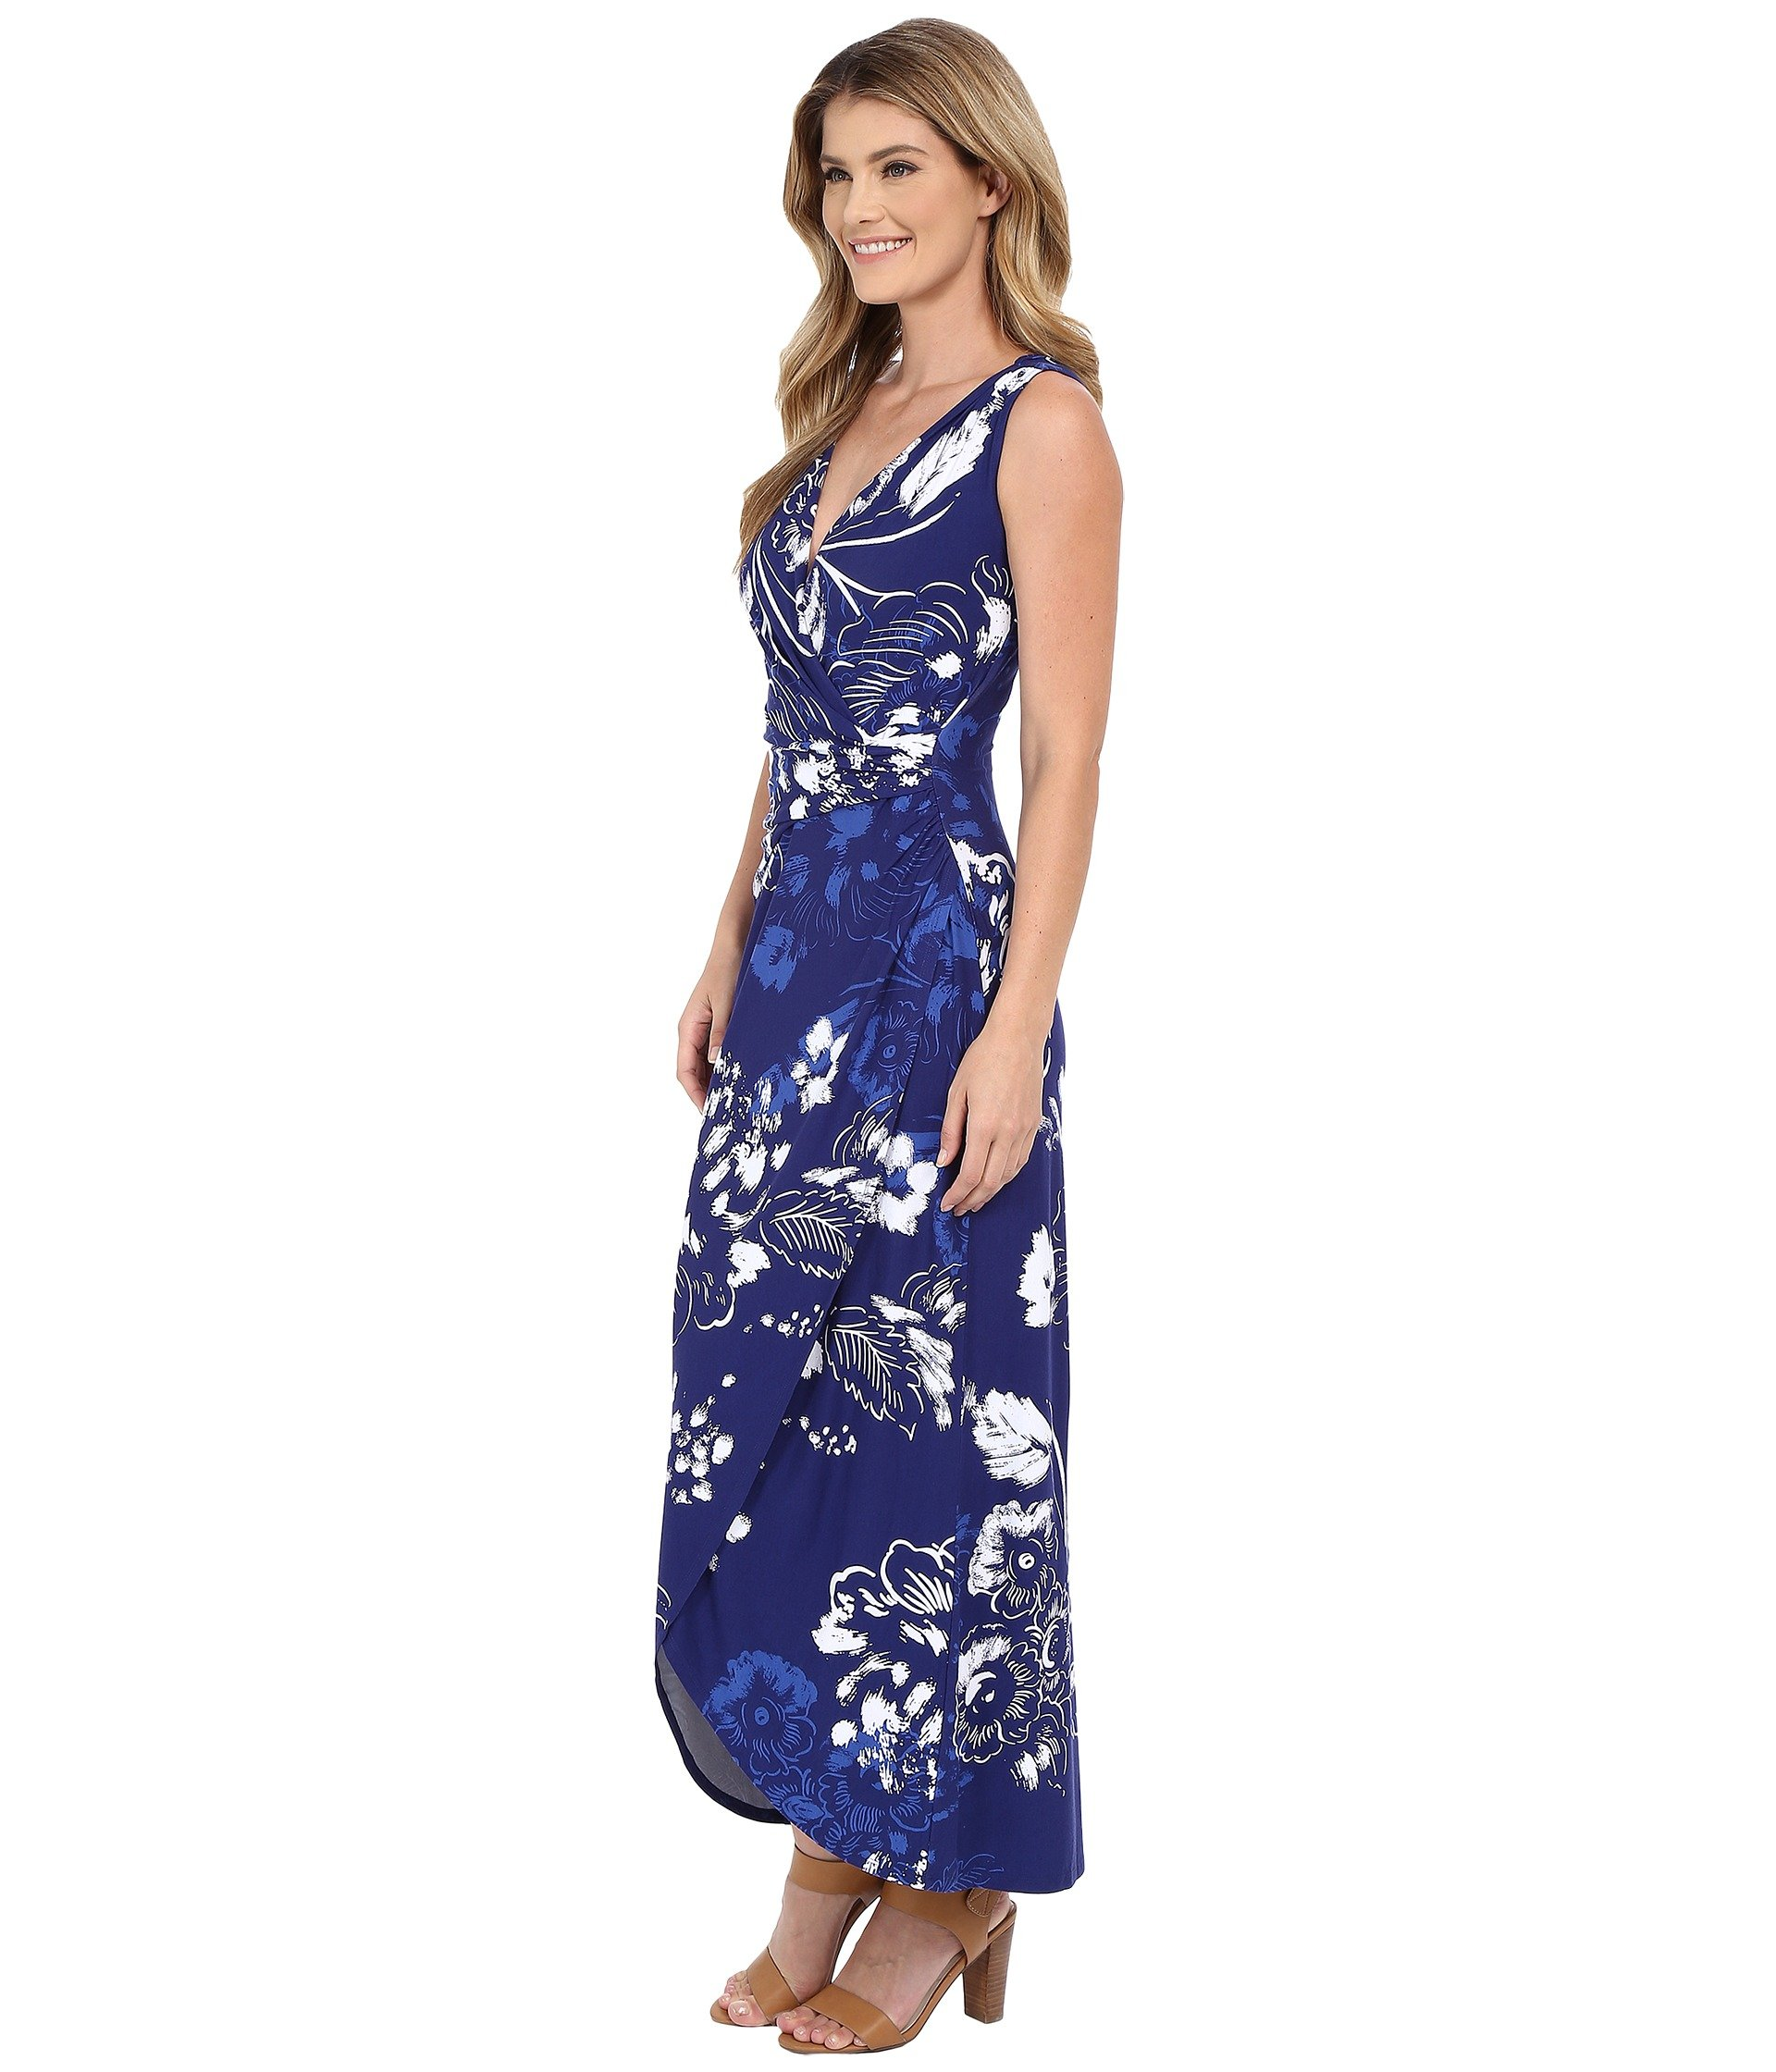 afeded1e7c0 Lyst - Tommy Bahama Freshwater Flowers Long Dress in Blue